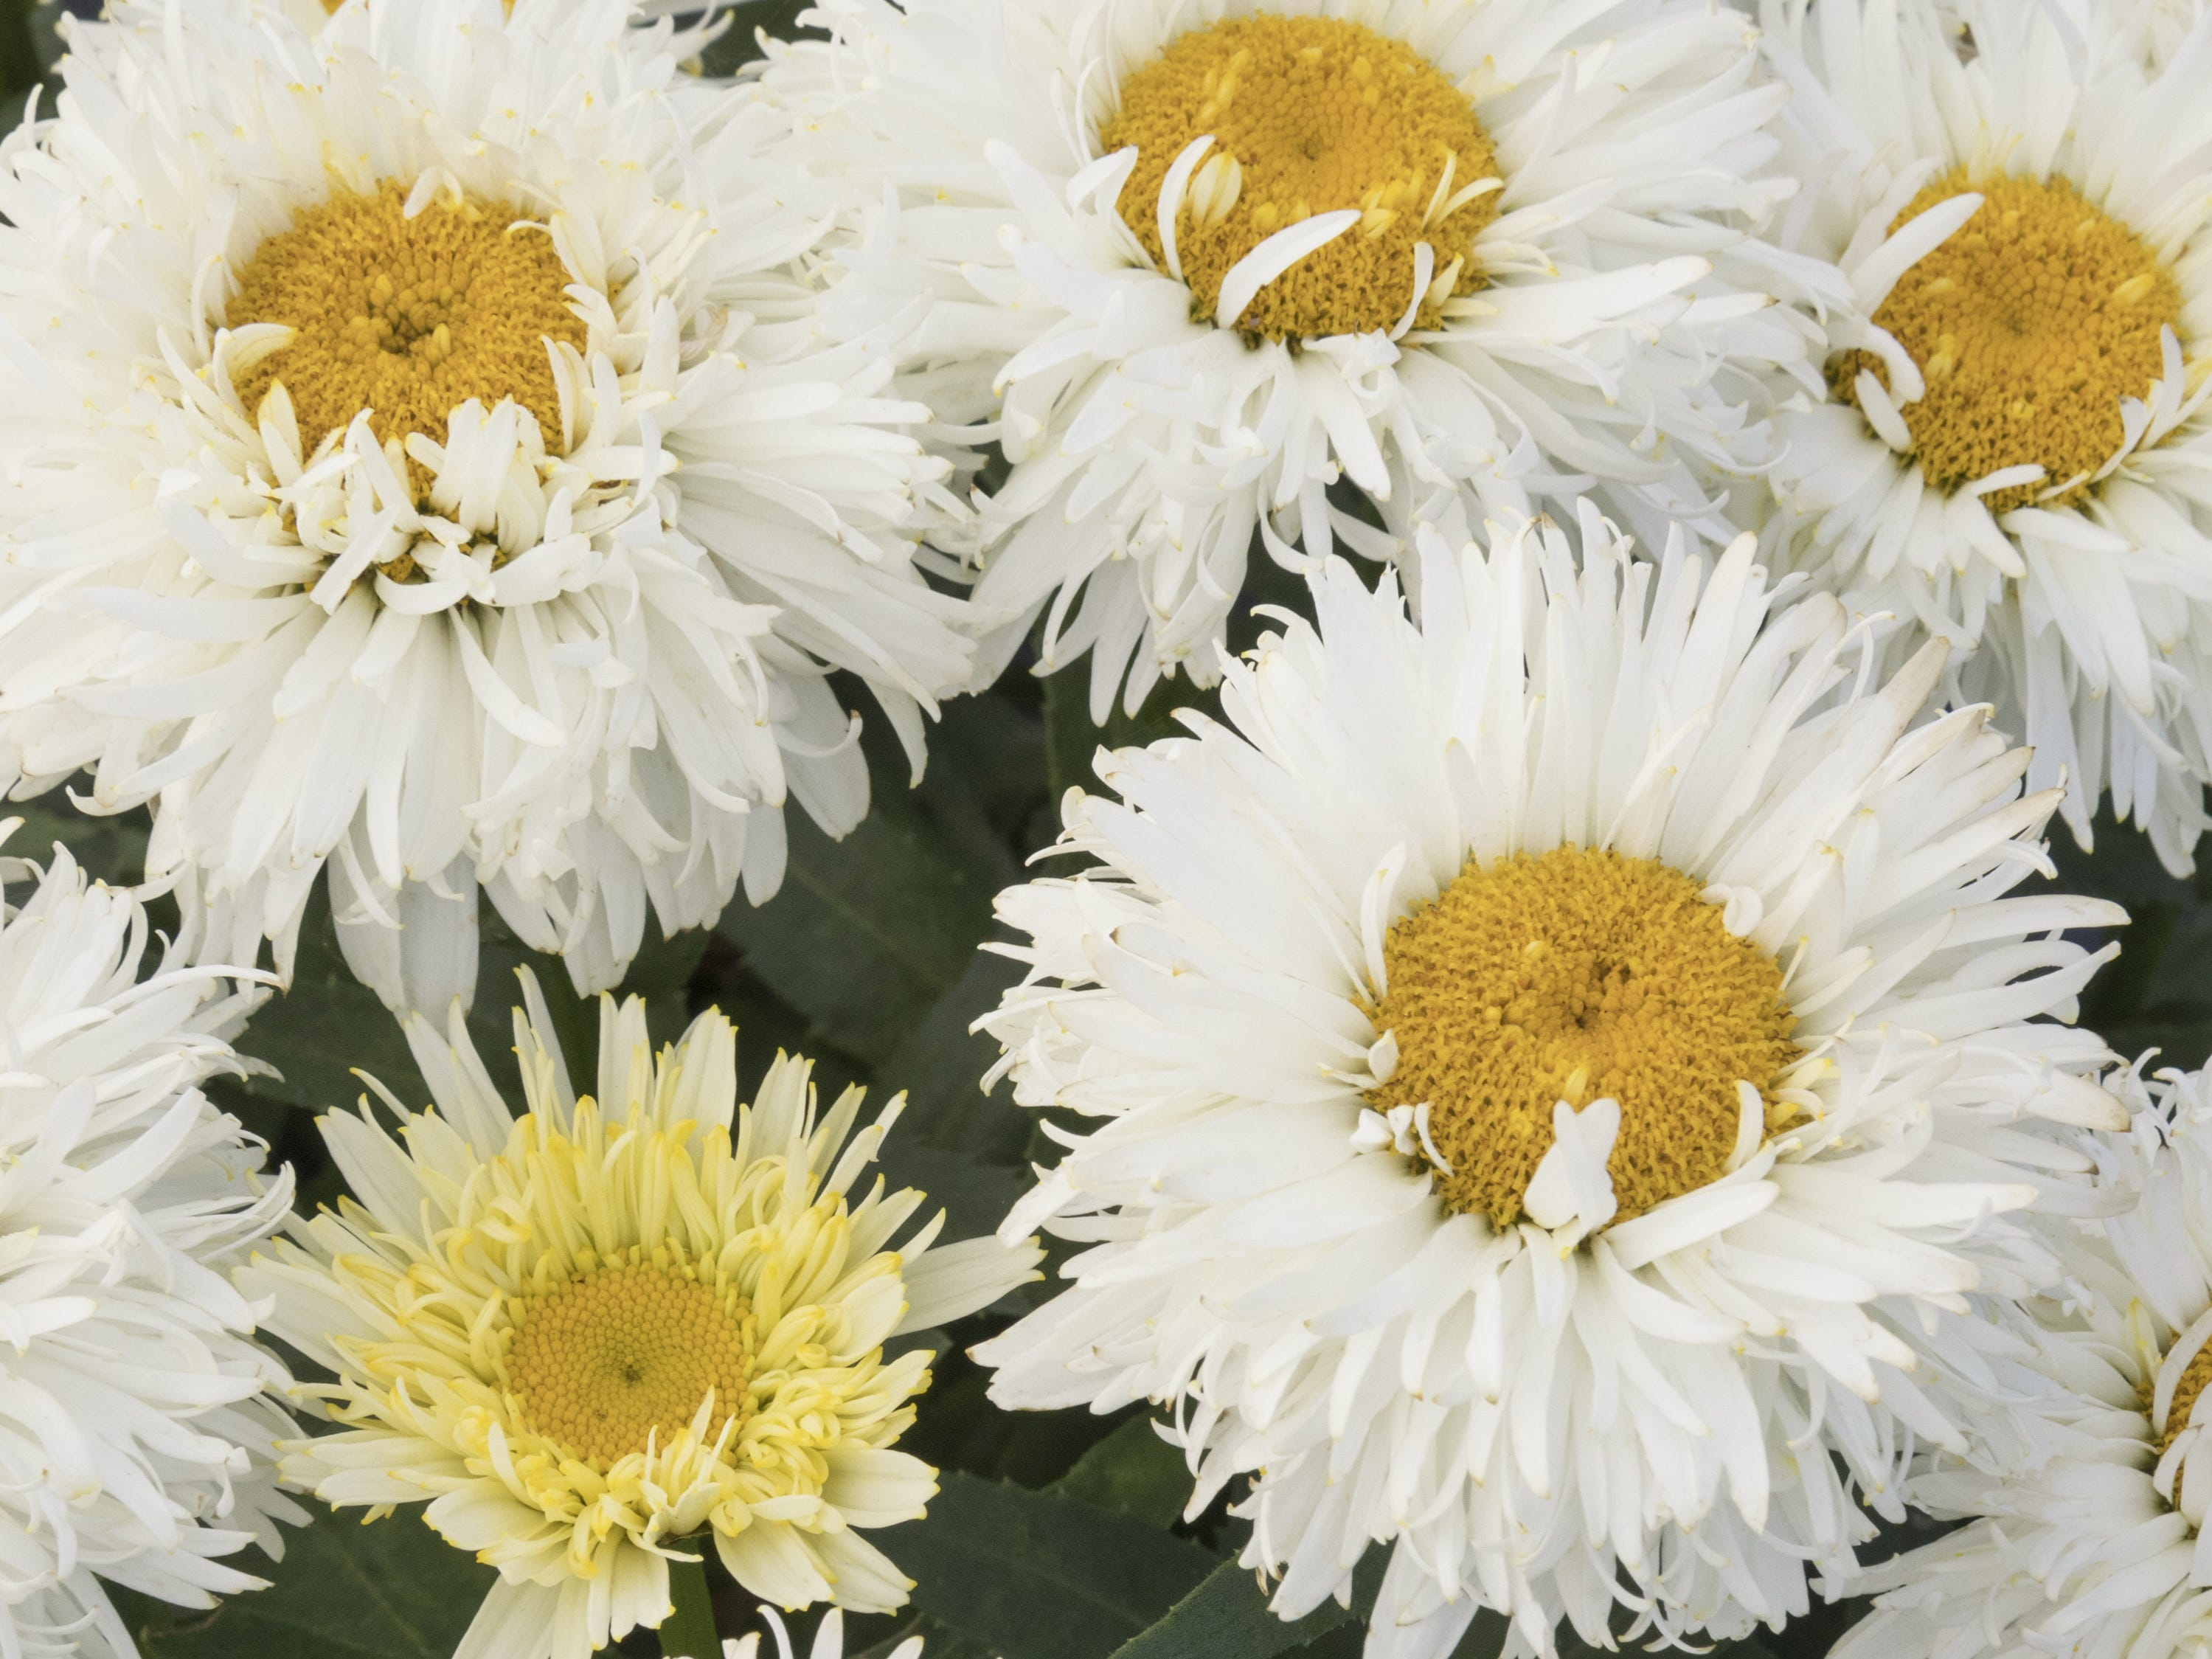 Kings Crown Shasta Daisy is good for borders, containers, cutting gardens, mass plantings, rock gardens and small spaces.